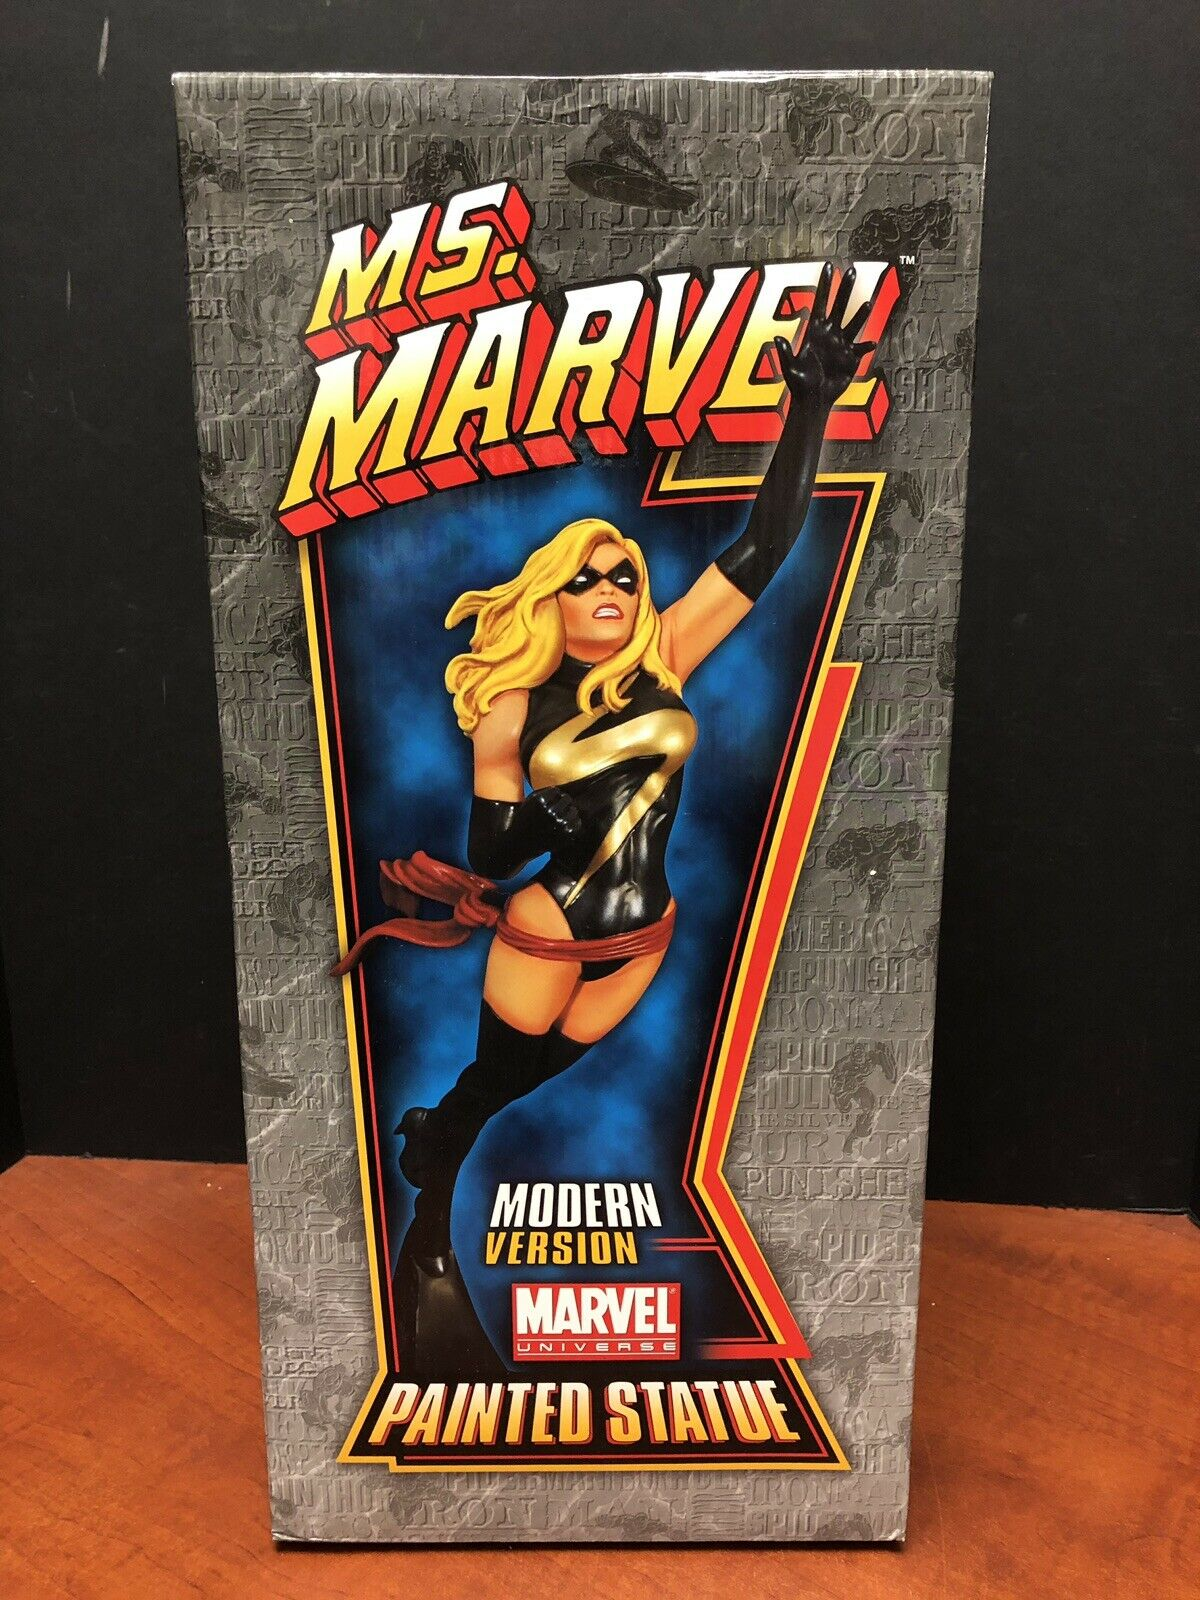 Bowen Designs Marvel Modern Version Ms. Marvel Statue TAMP0252